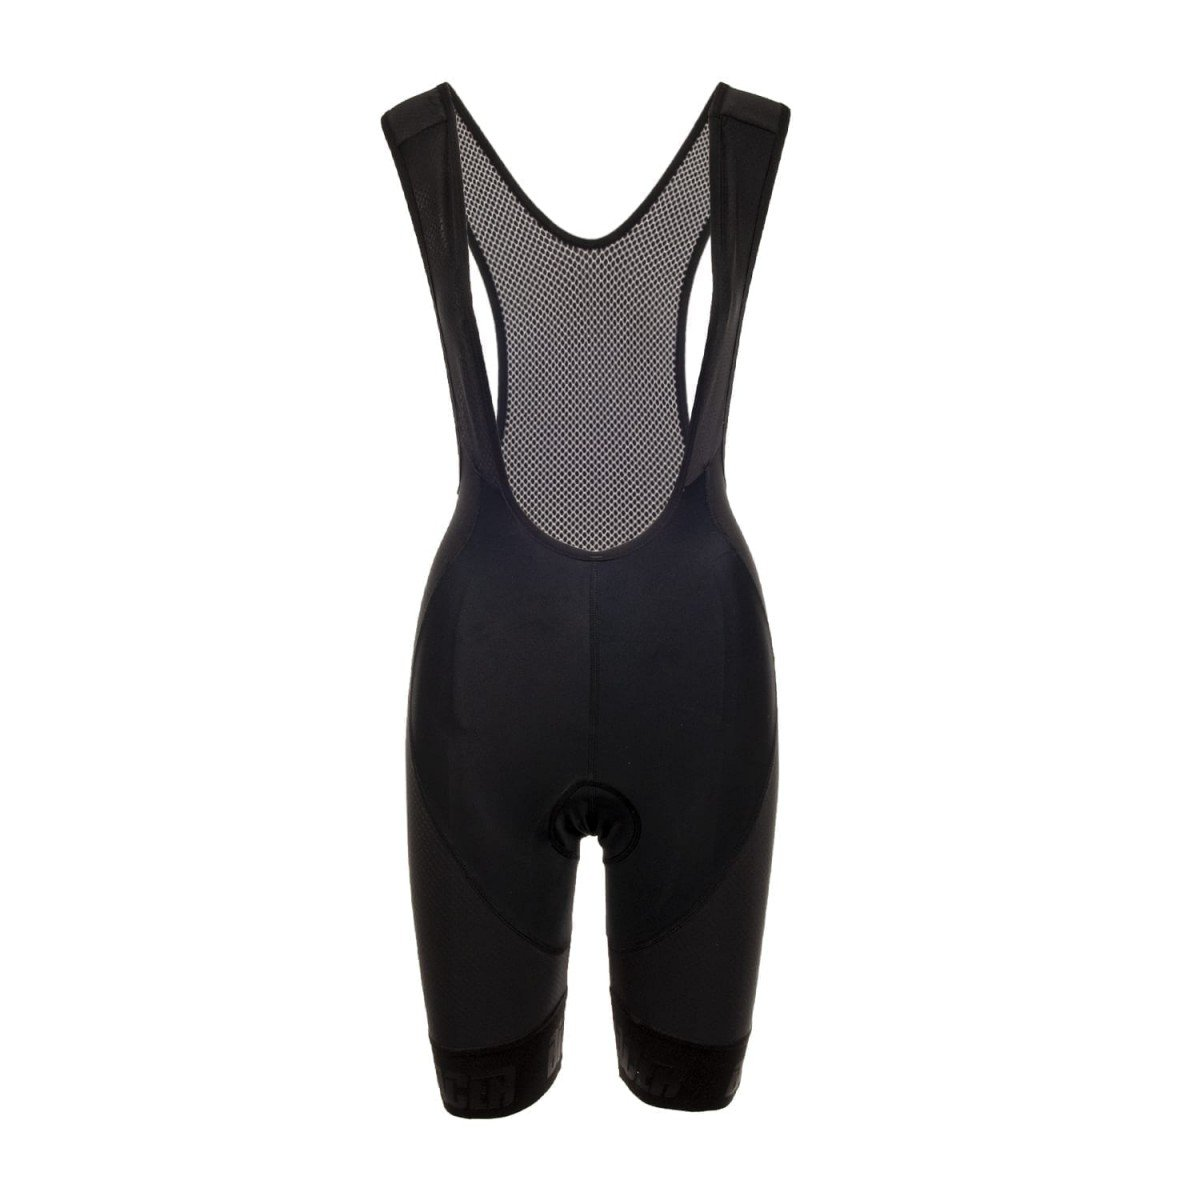 EAN-code: 5414985071064 Brand: BIORACER Product: KORTE BROEK MAAT M SPRINTER ONE COLD BLACK - DAMES at cycleXperience.nl